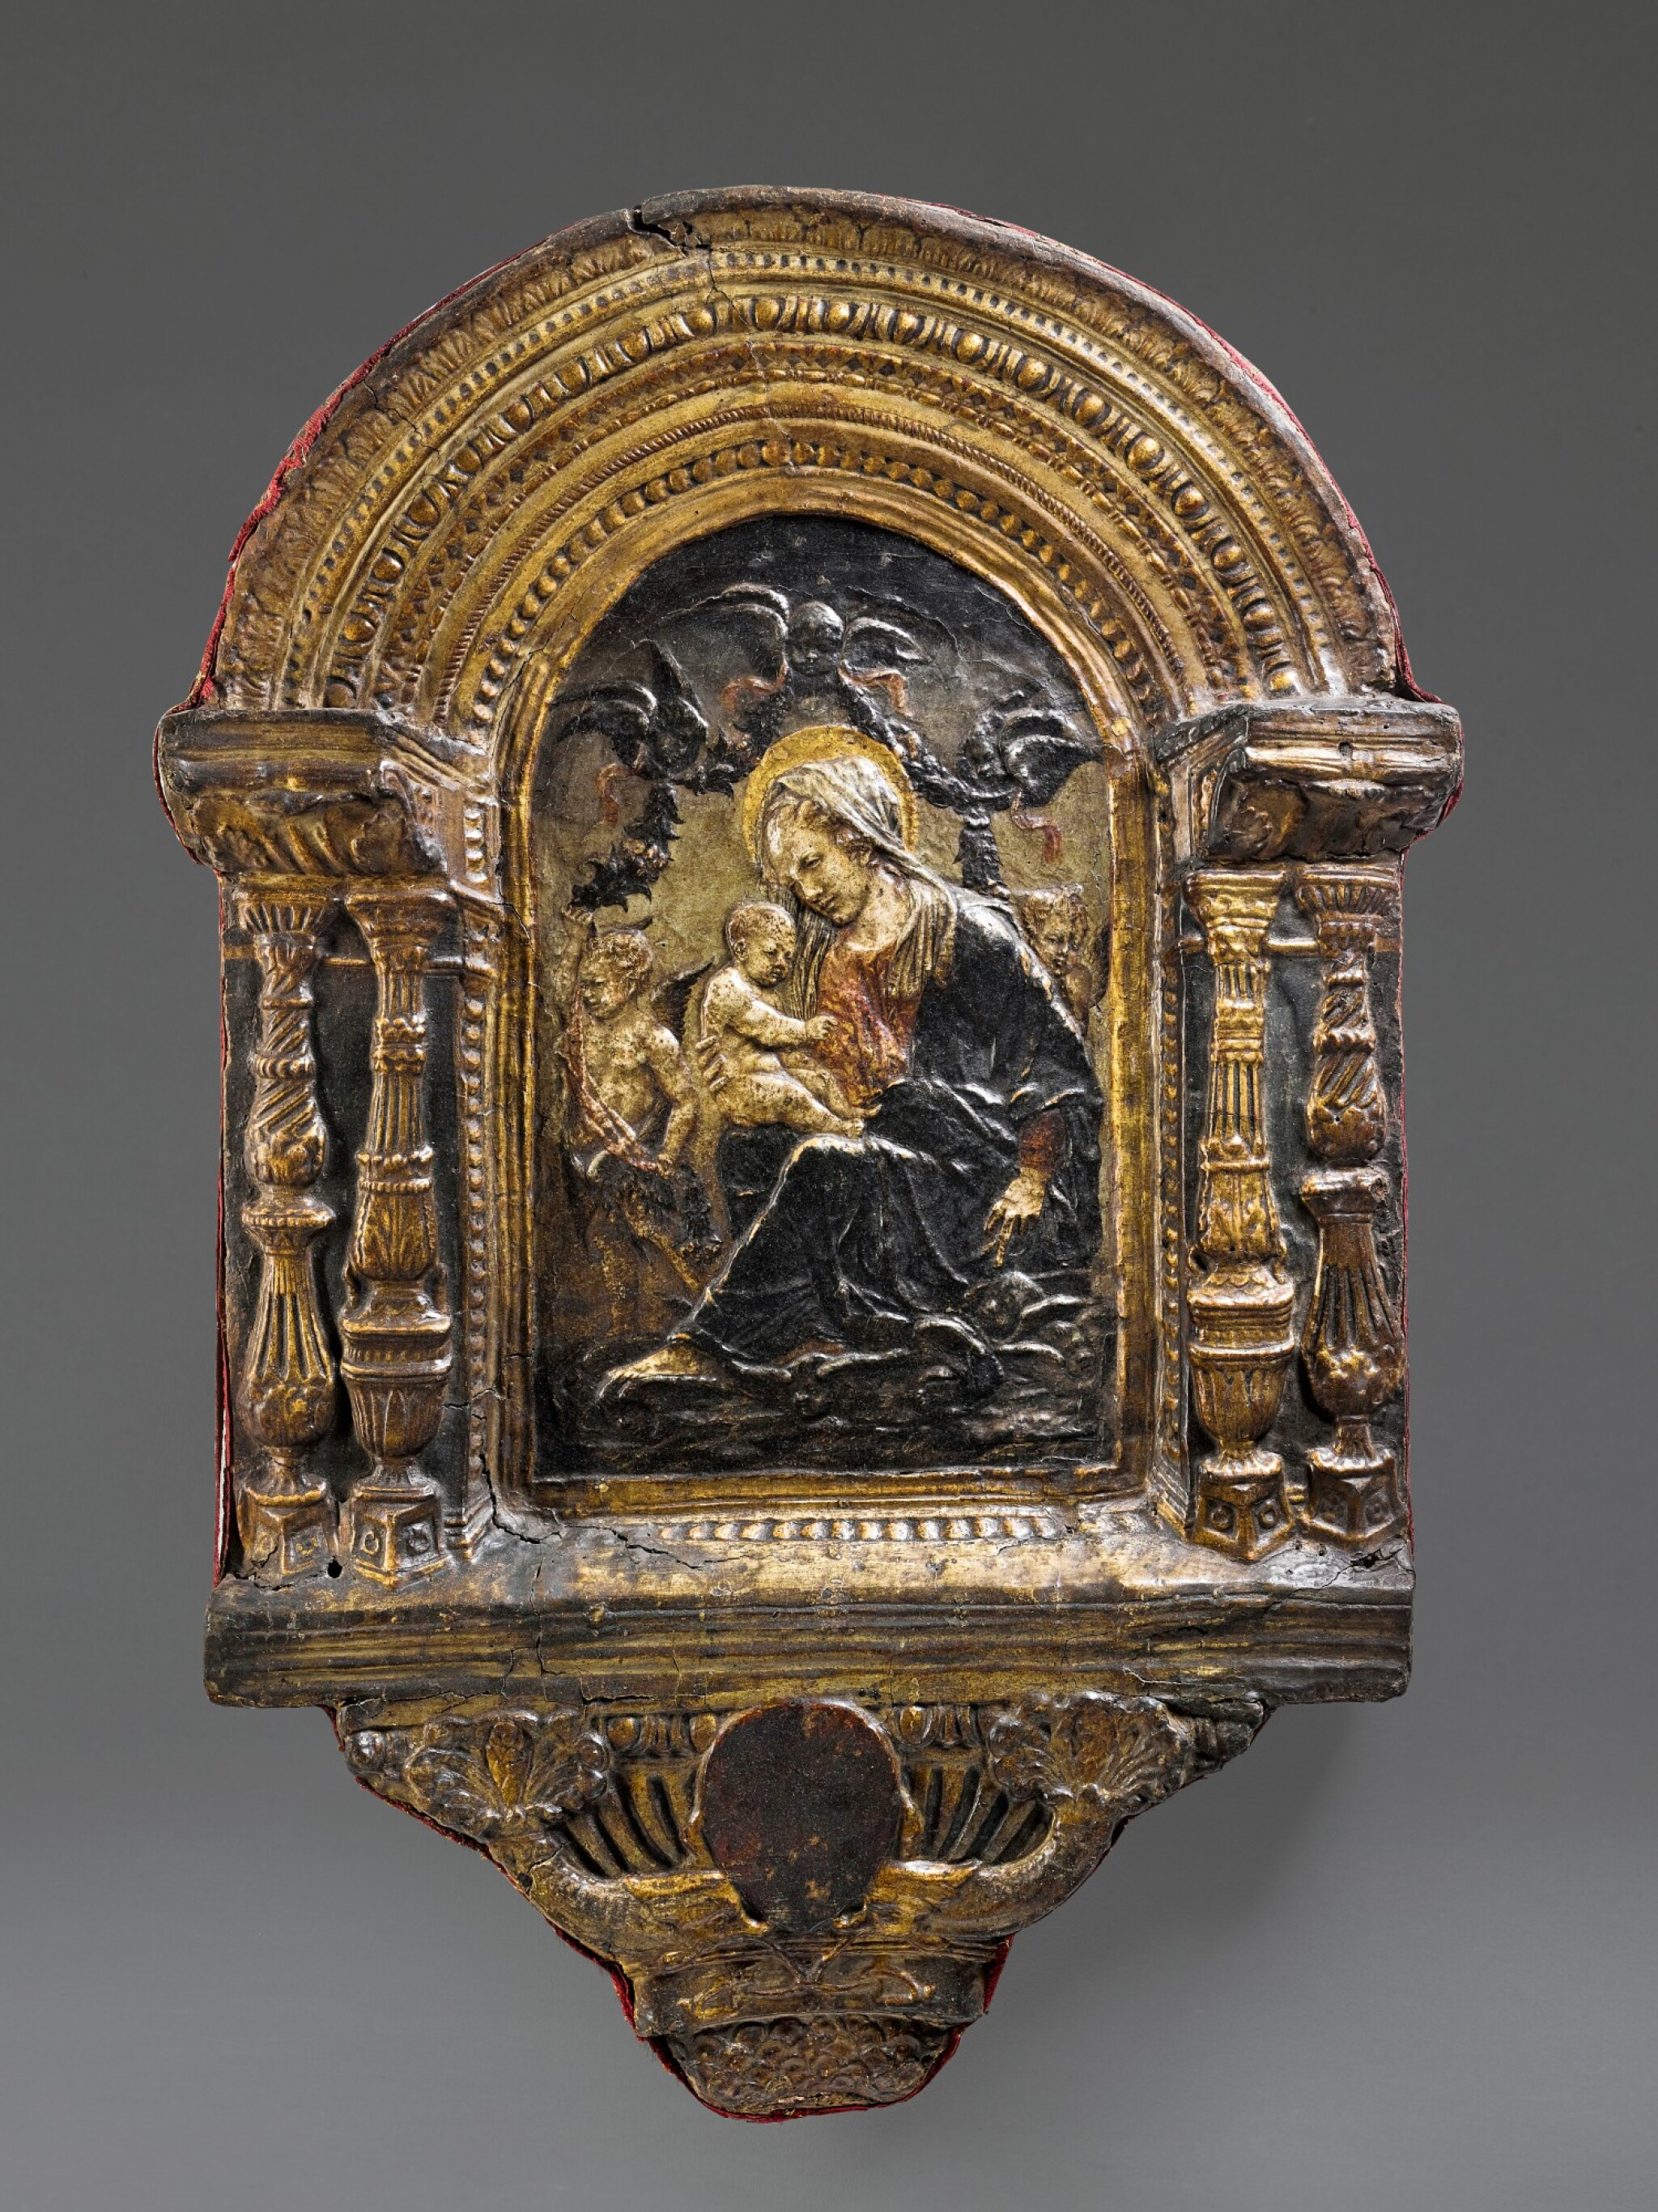 Italian, Florence or Siena, circa 1470-1480 | Relief with the Madonna and Child among Clouds